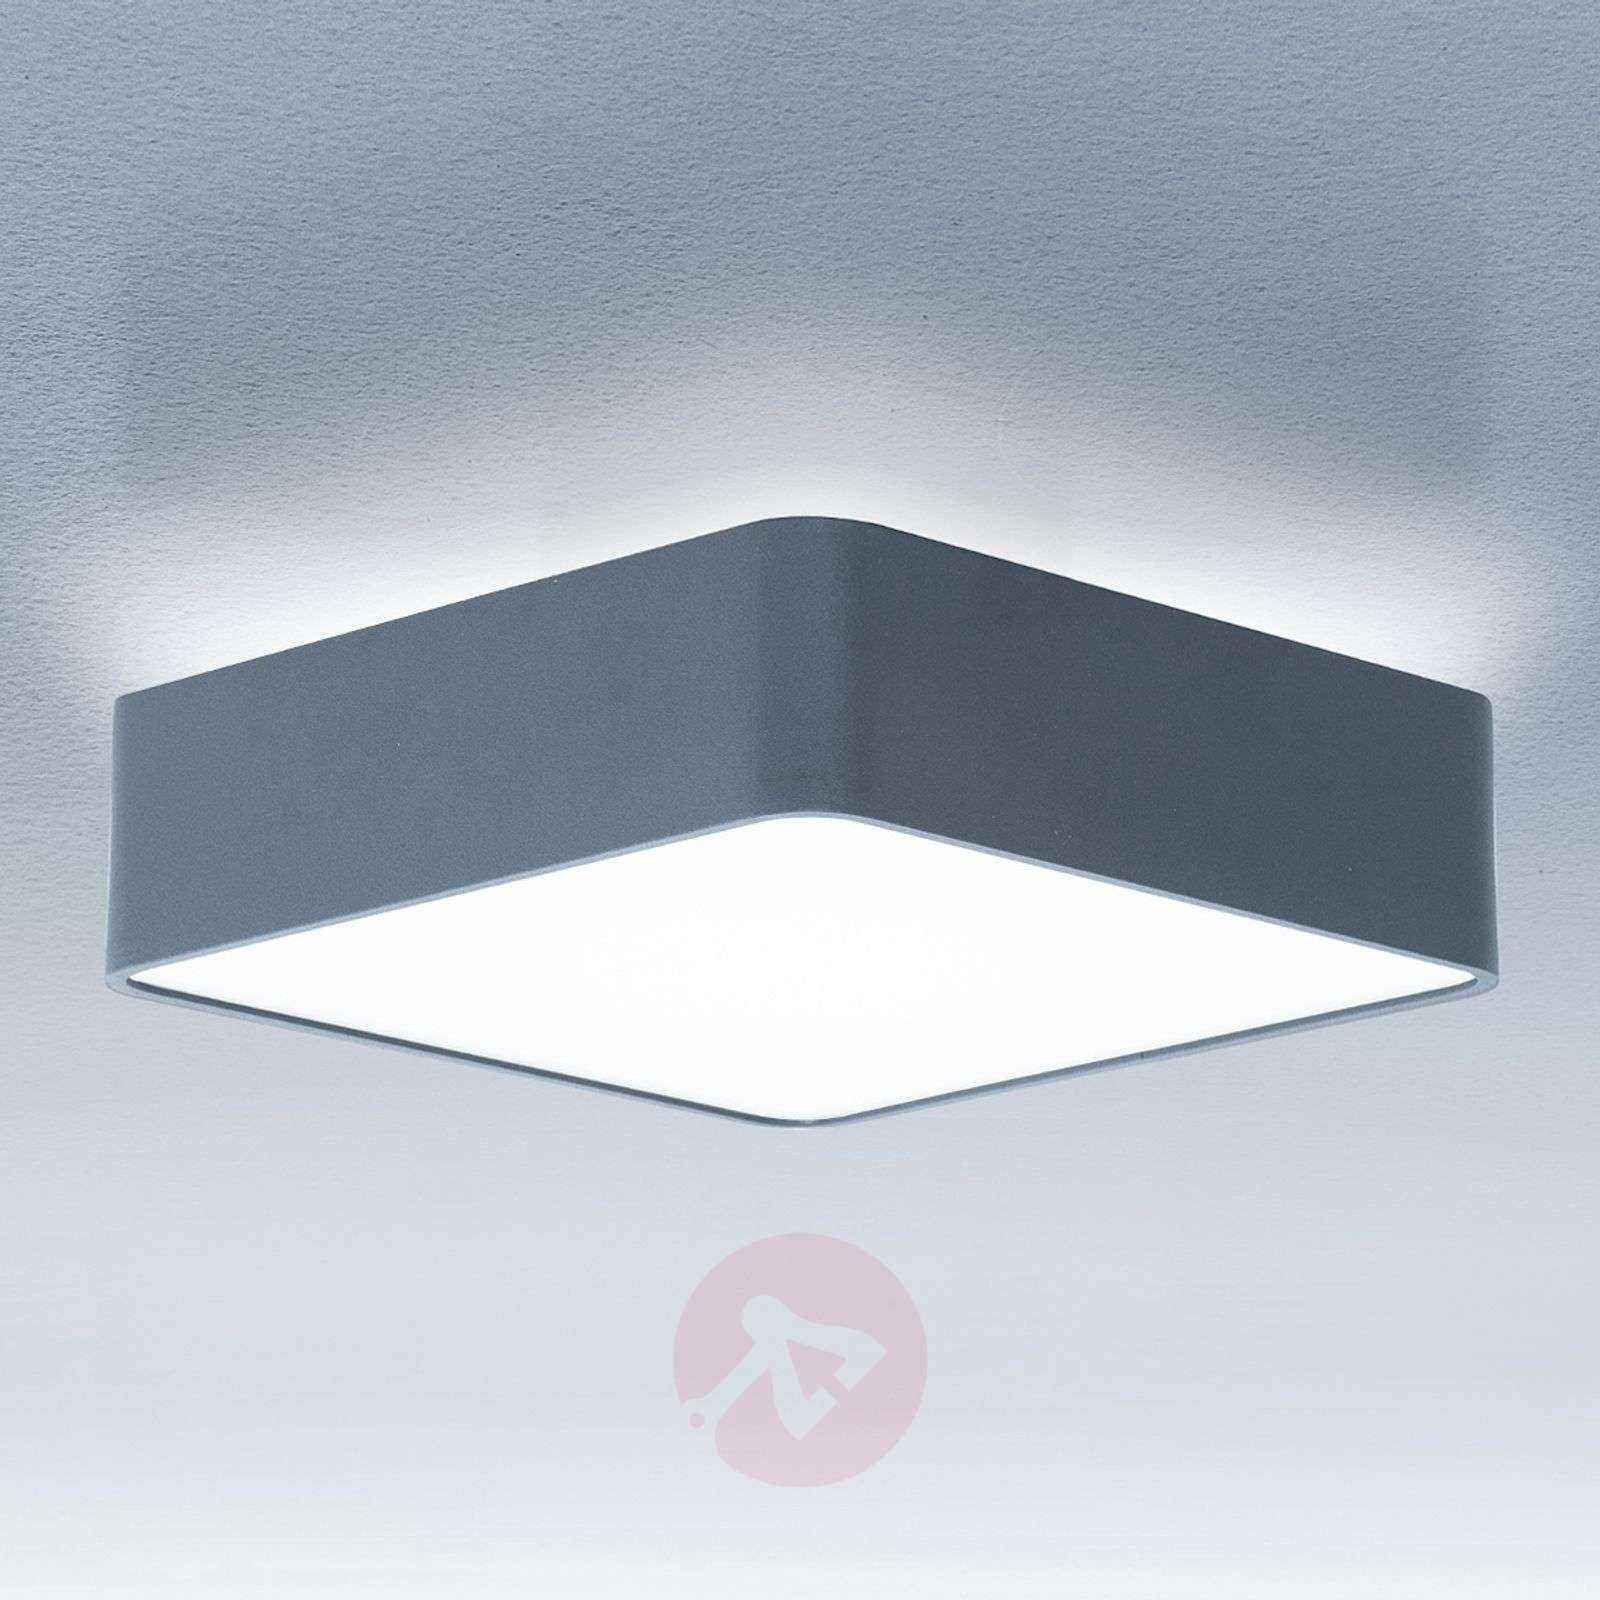 Caleo-X2 square LED ceiling light cool white-6033494X-01